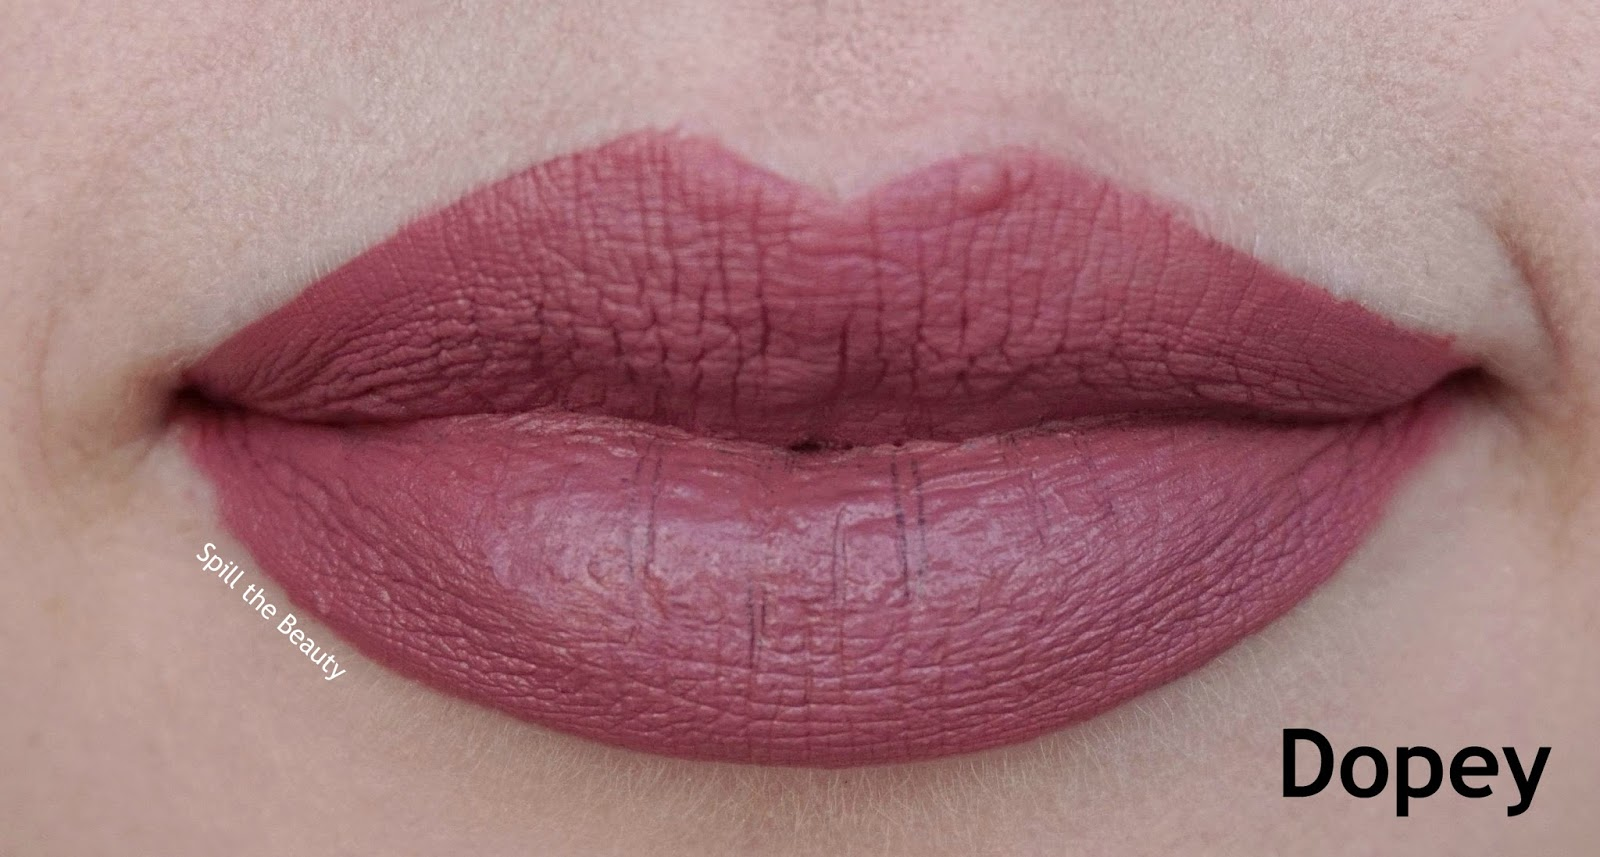 colourpop ultra satin lips faves swatches 4 dopey - lips